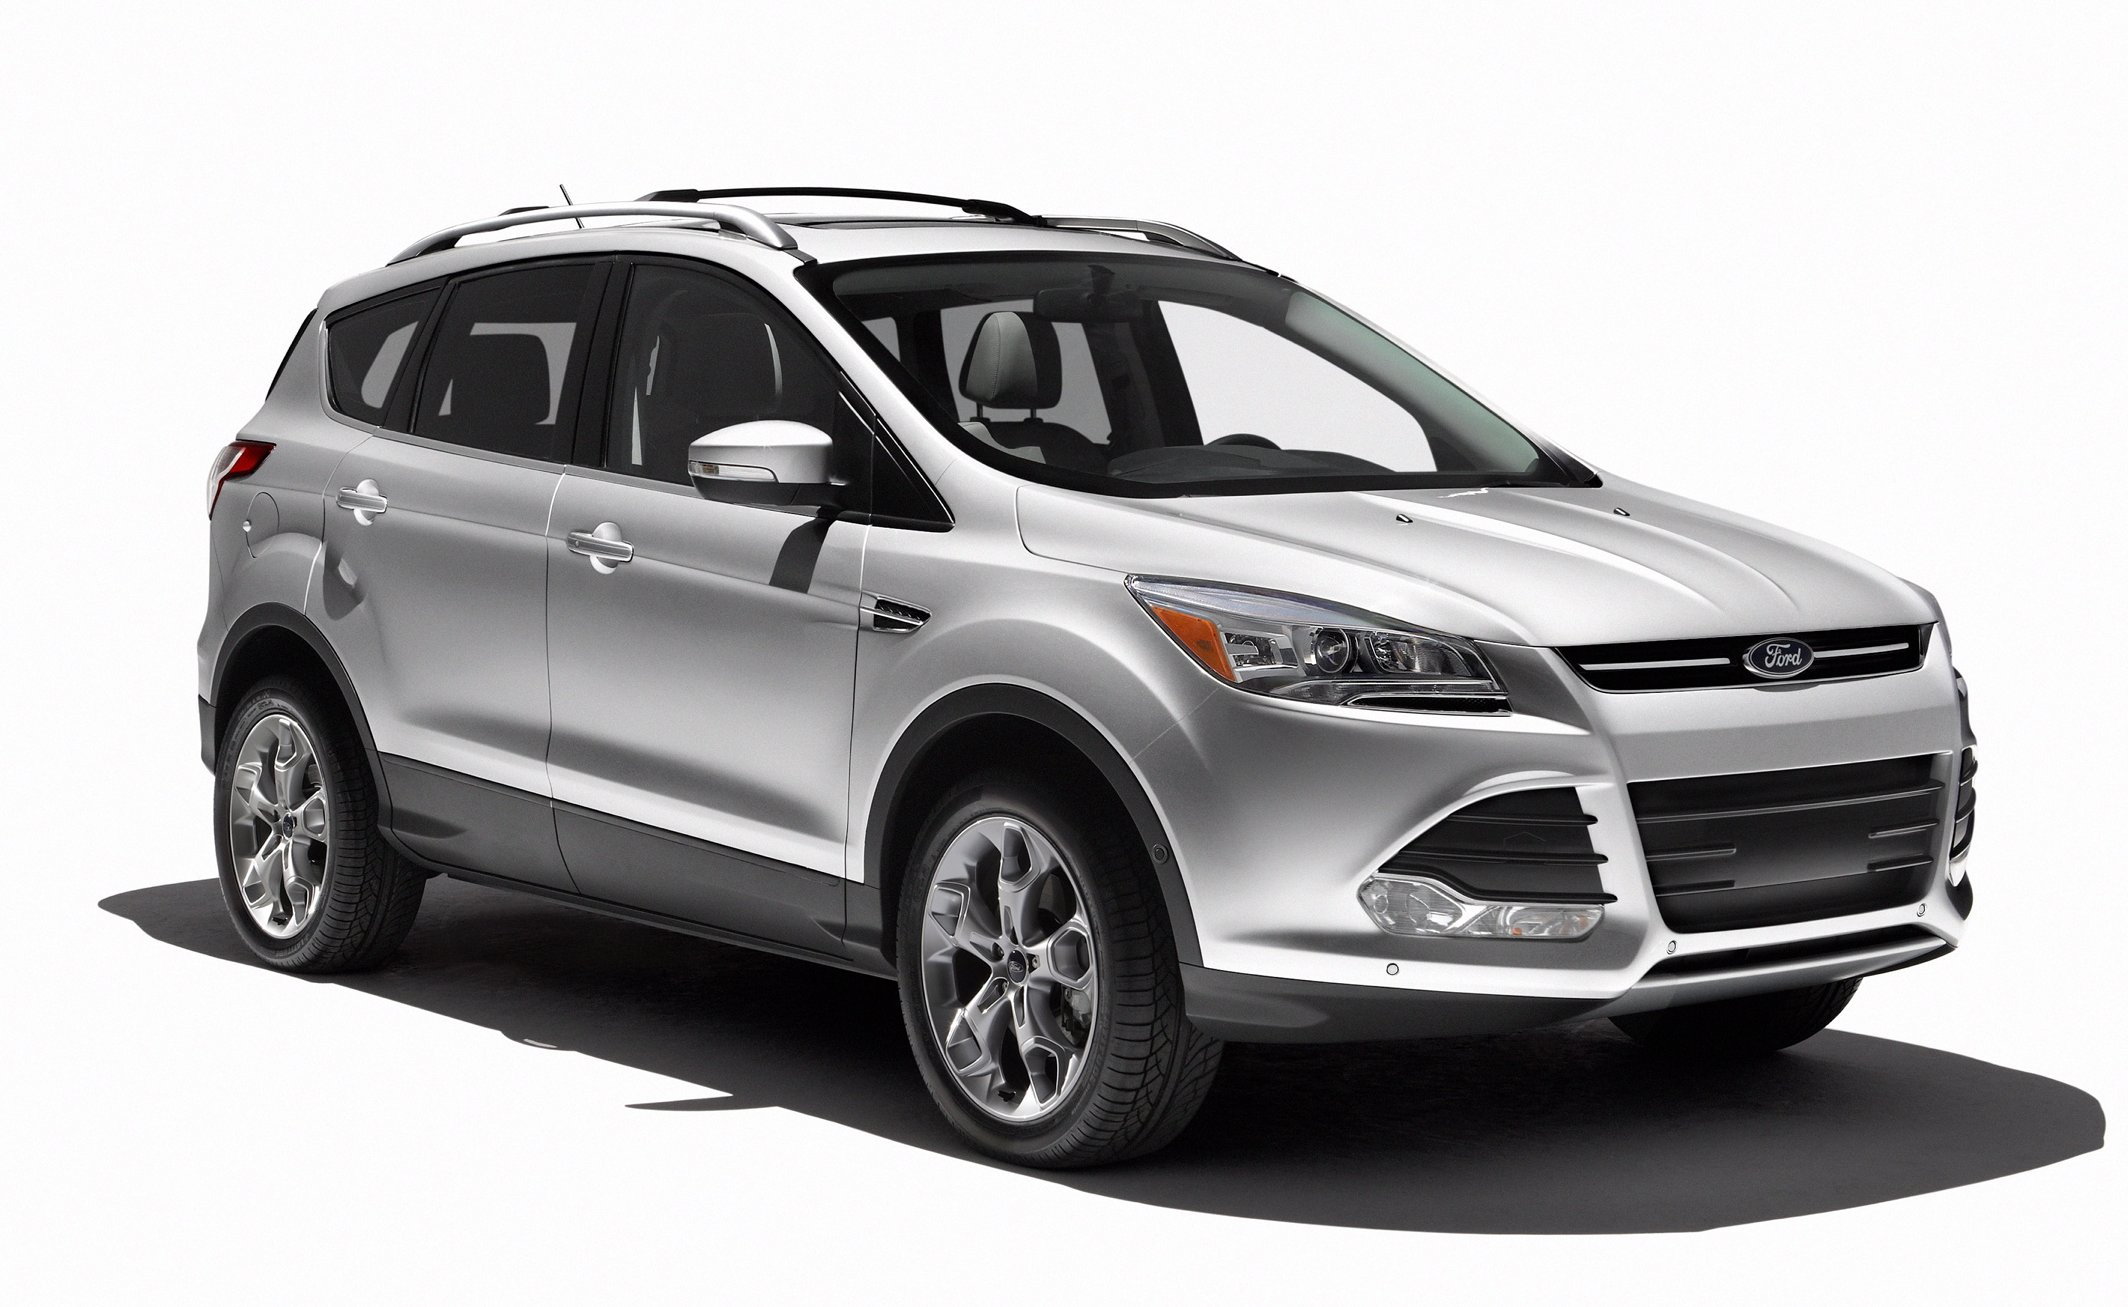 2013 ford escape debuts in la call it the kuga too paul. Black Bedroom Furniture Sets. Home Design Ideas